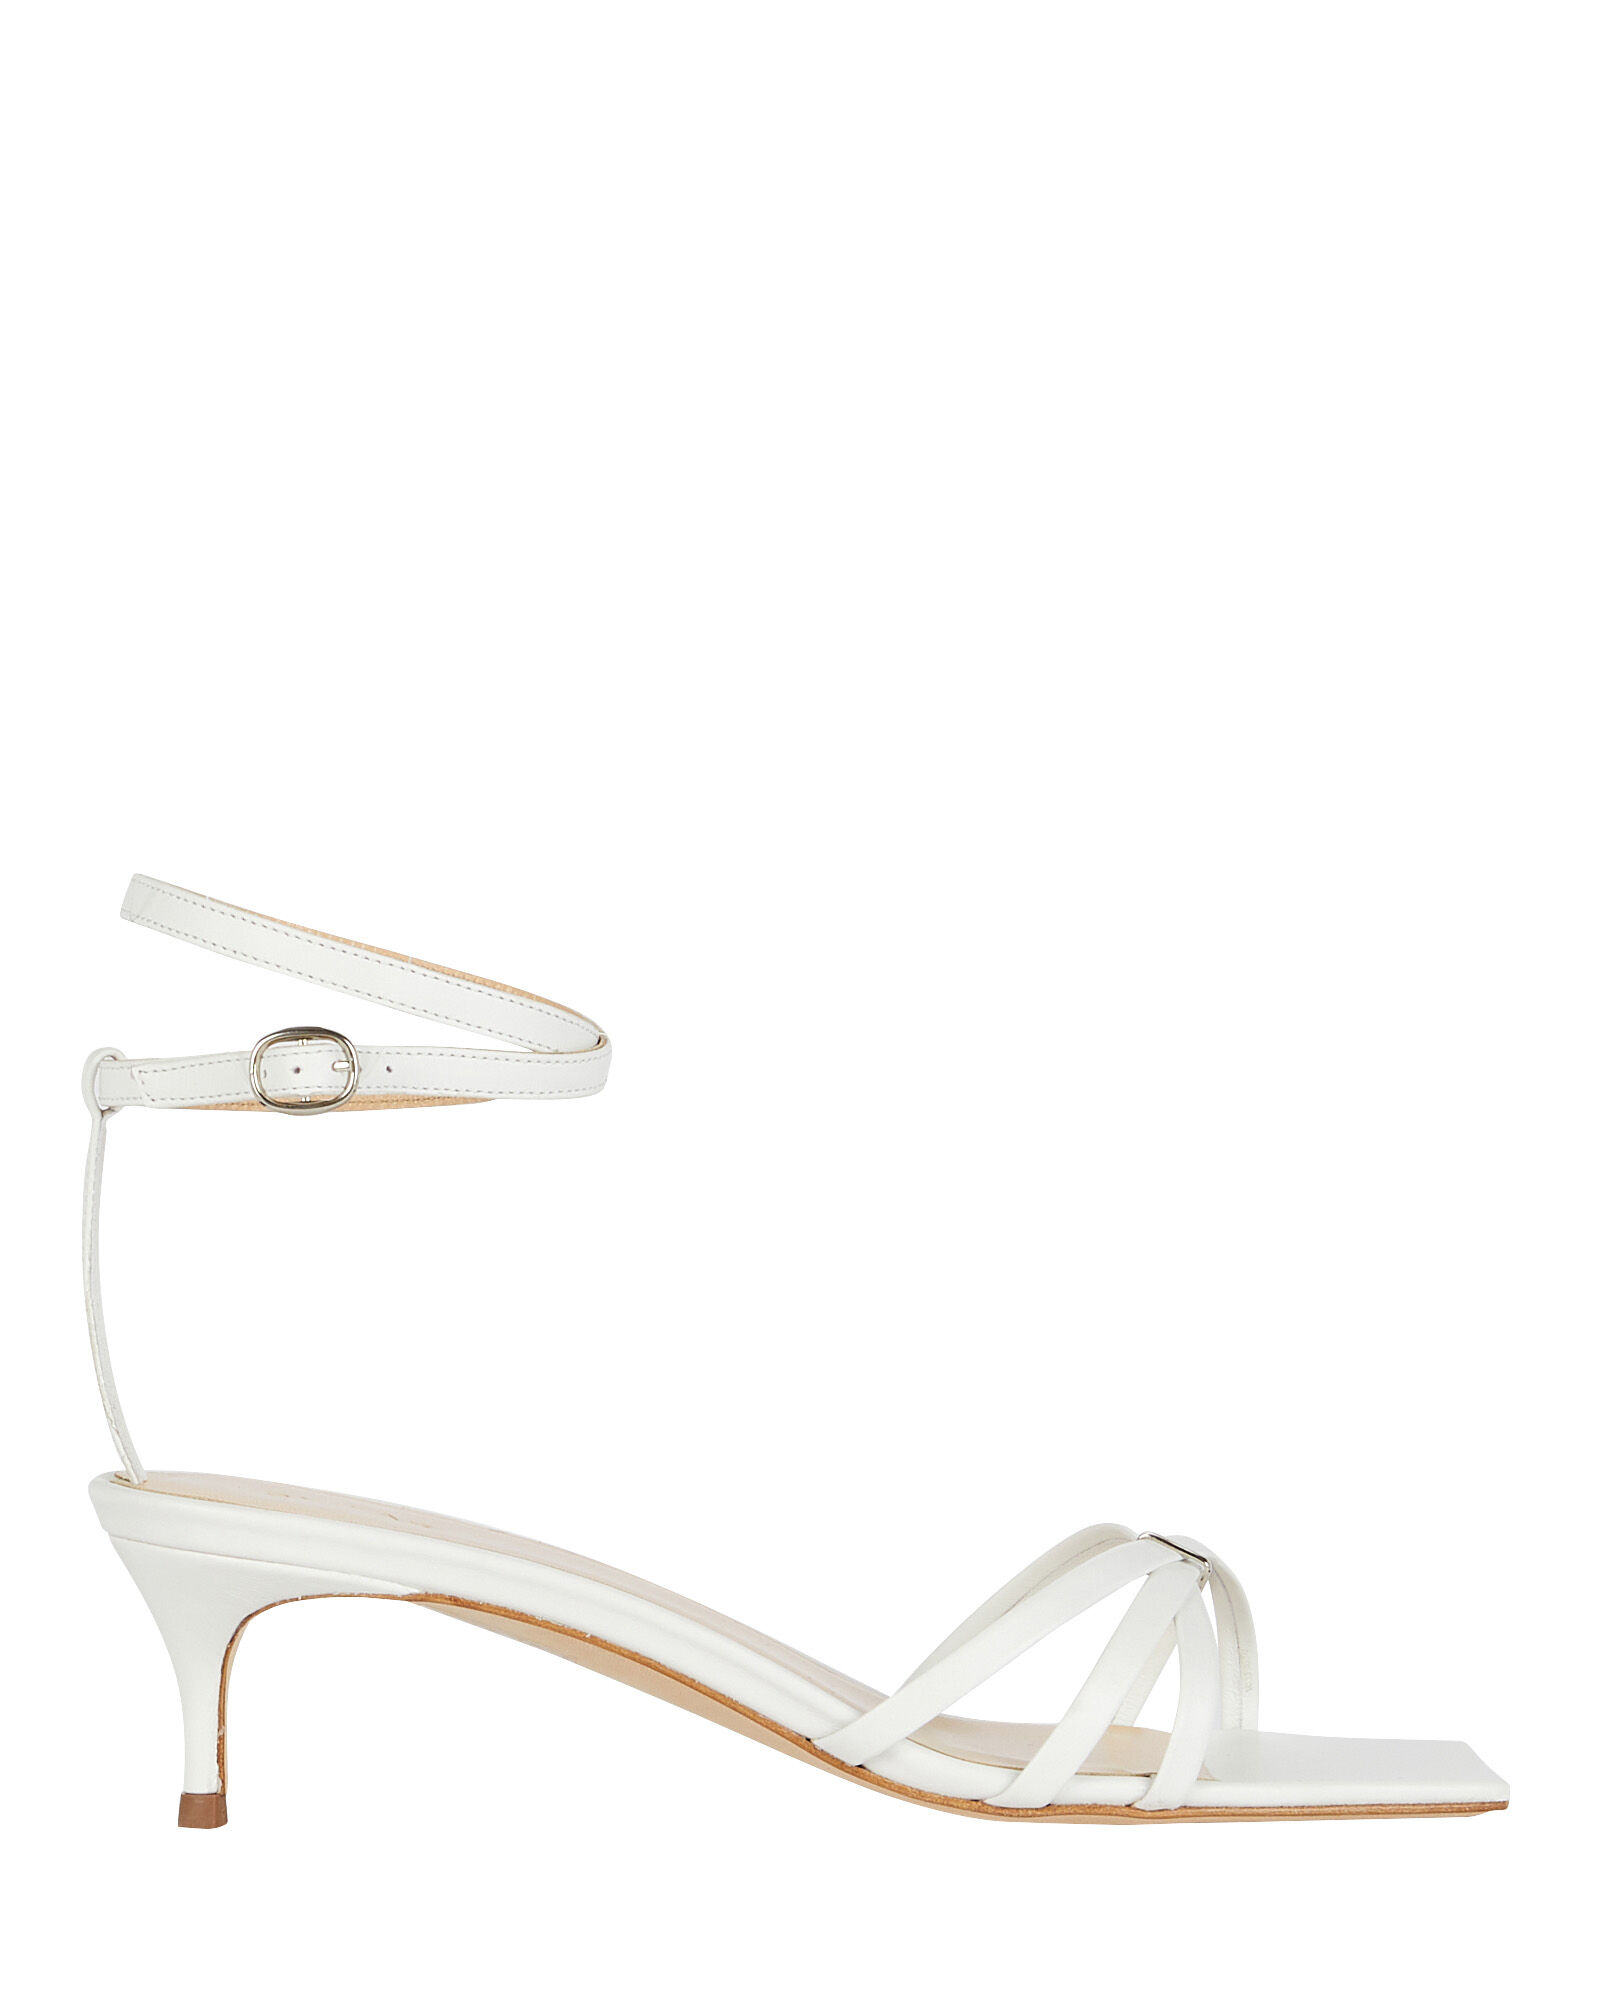 Kaia Leather Wrap Sandals, WHITE, hi-res